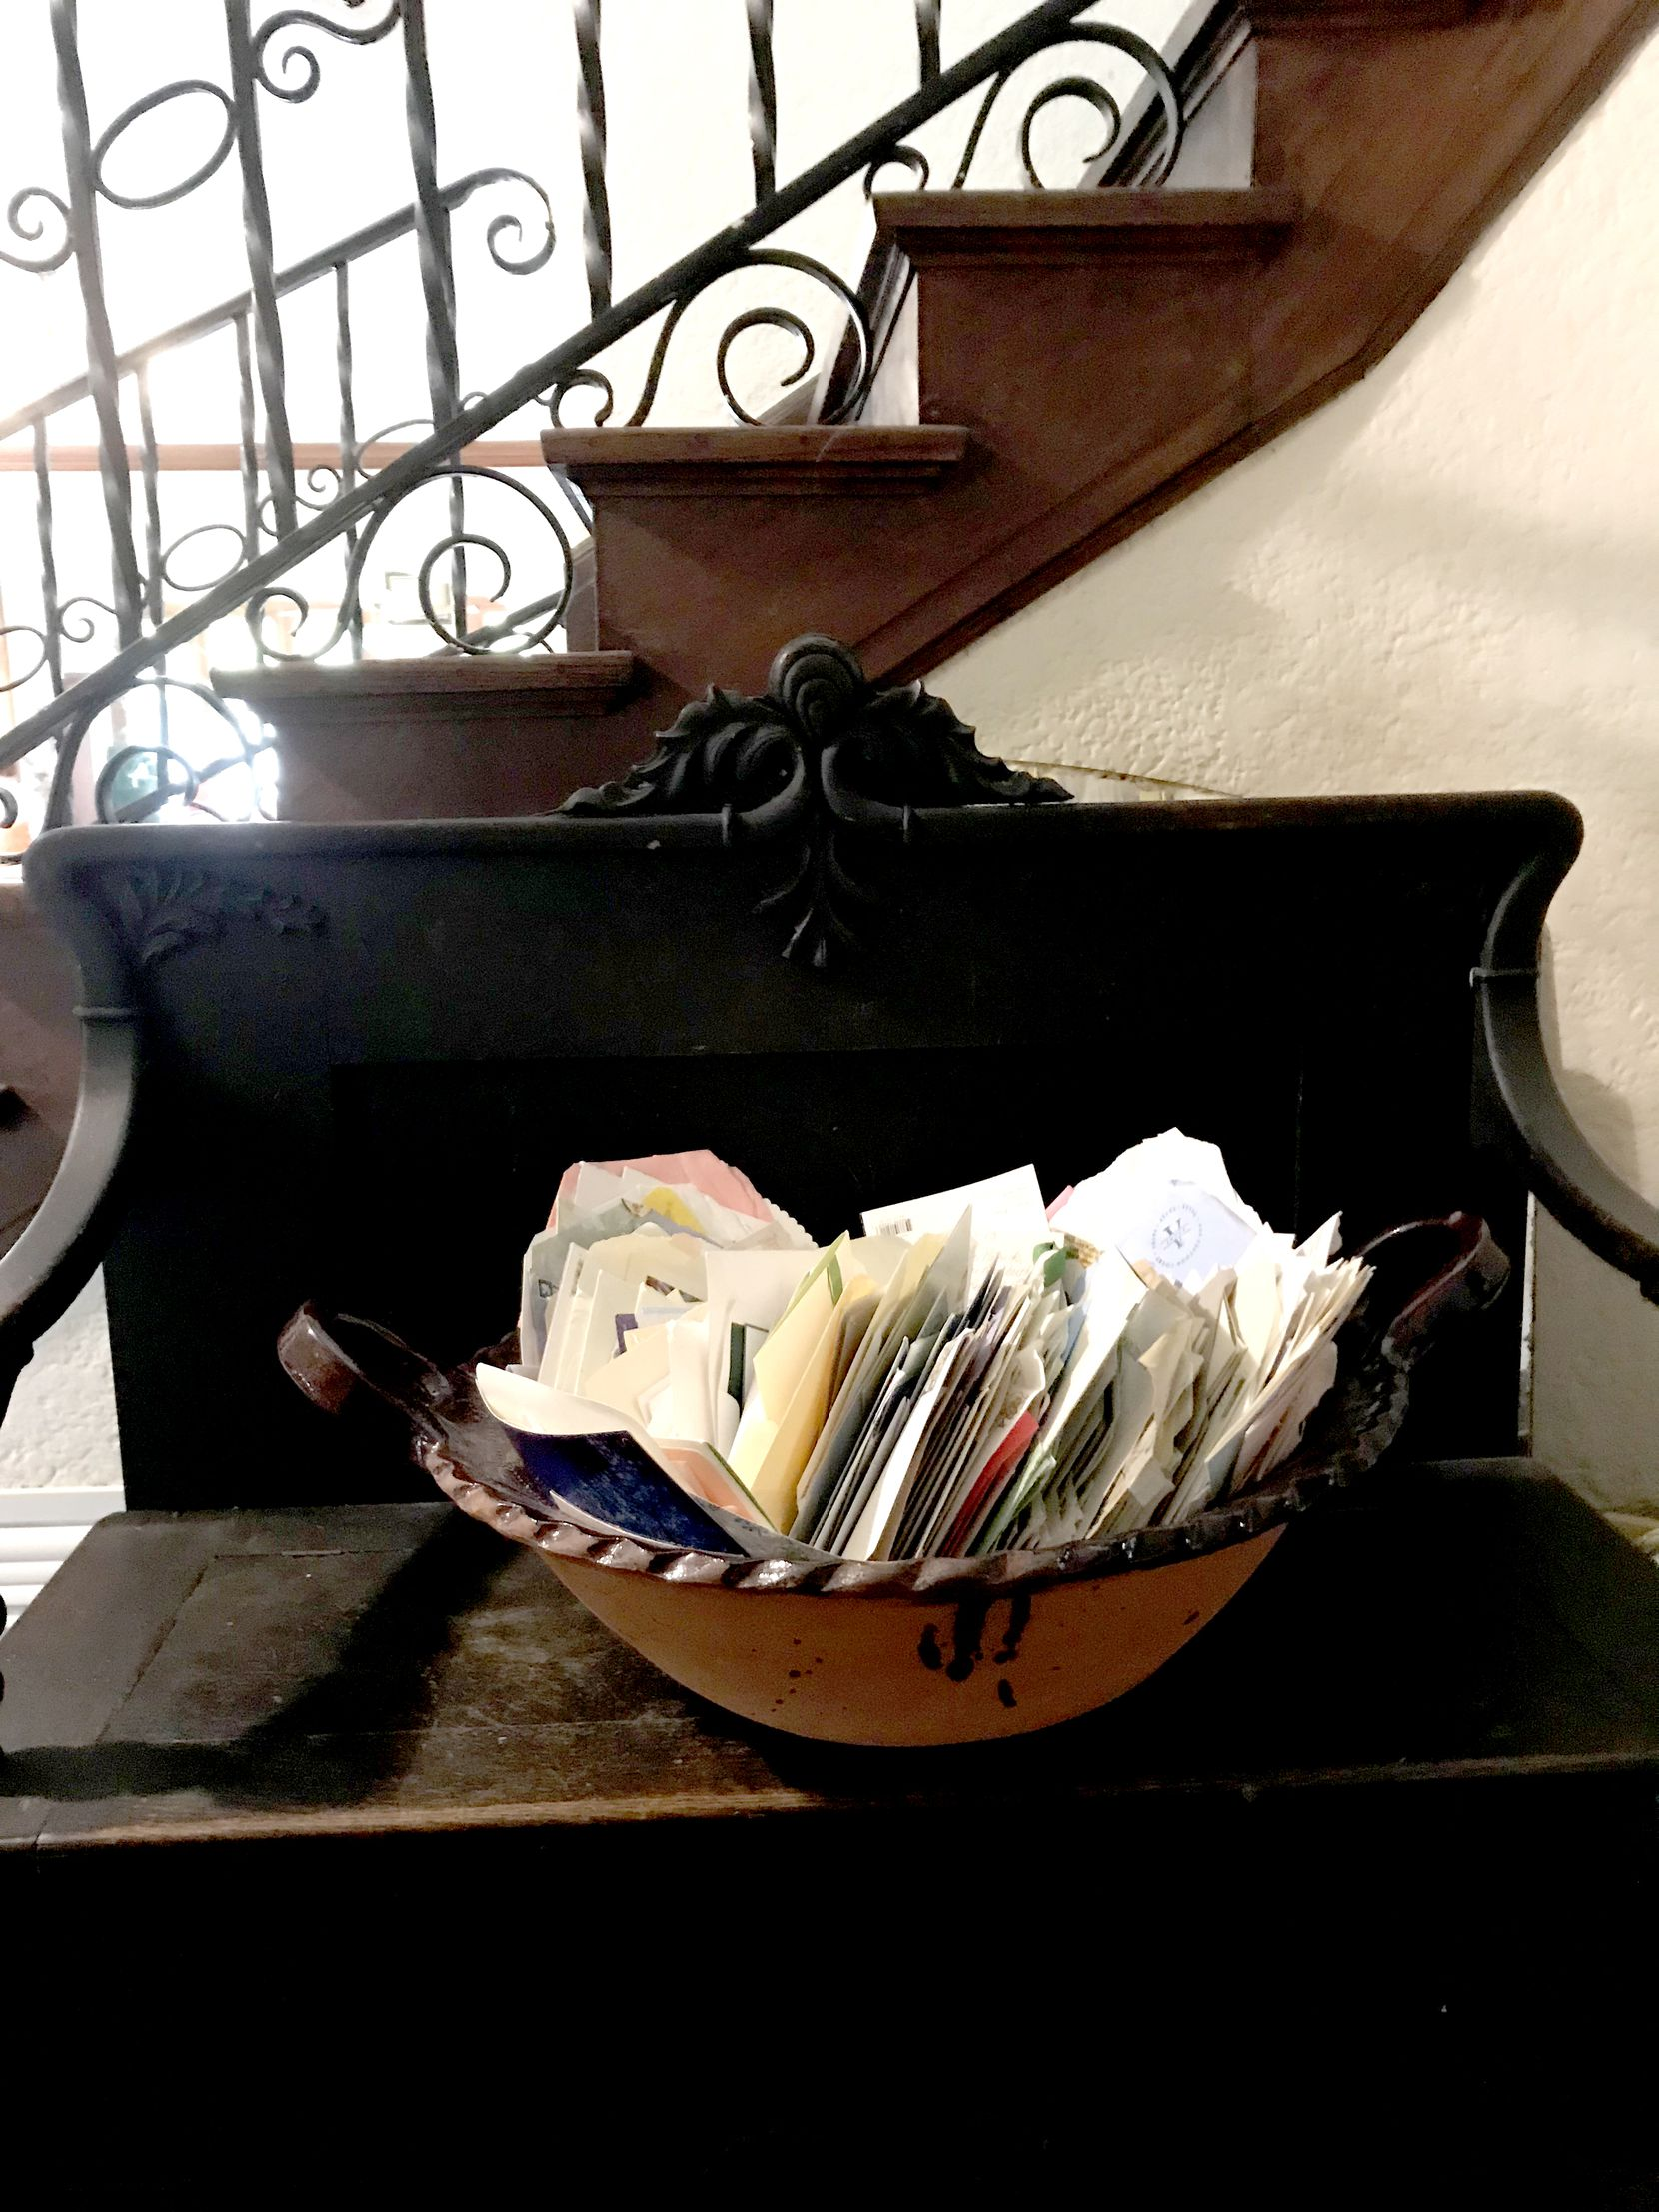 In the front hall of the McSwanes' home, they keep a bowl full of letters they received after the suicide of their son Patrick, who battled schizophrenia.